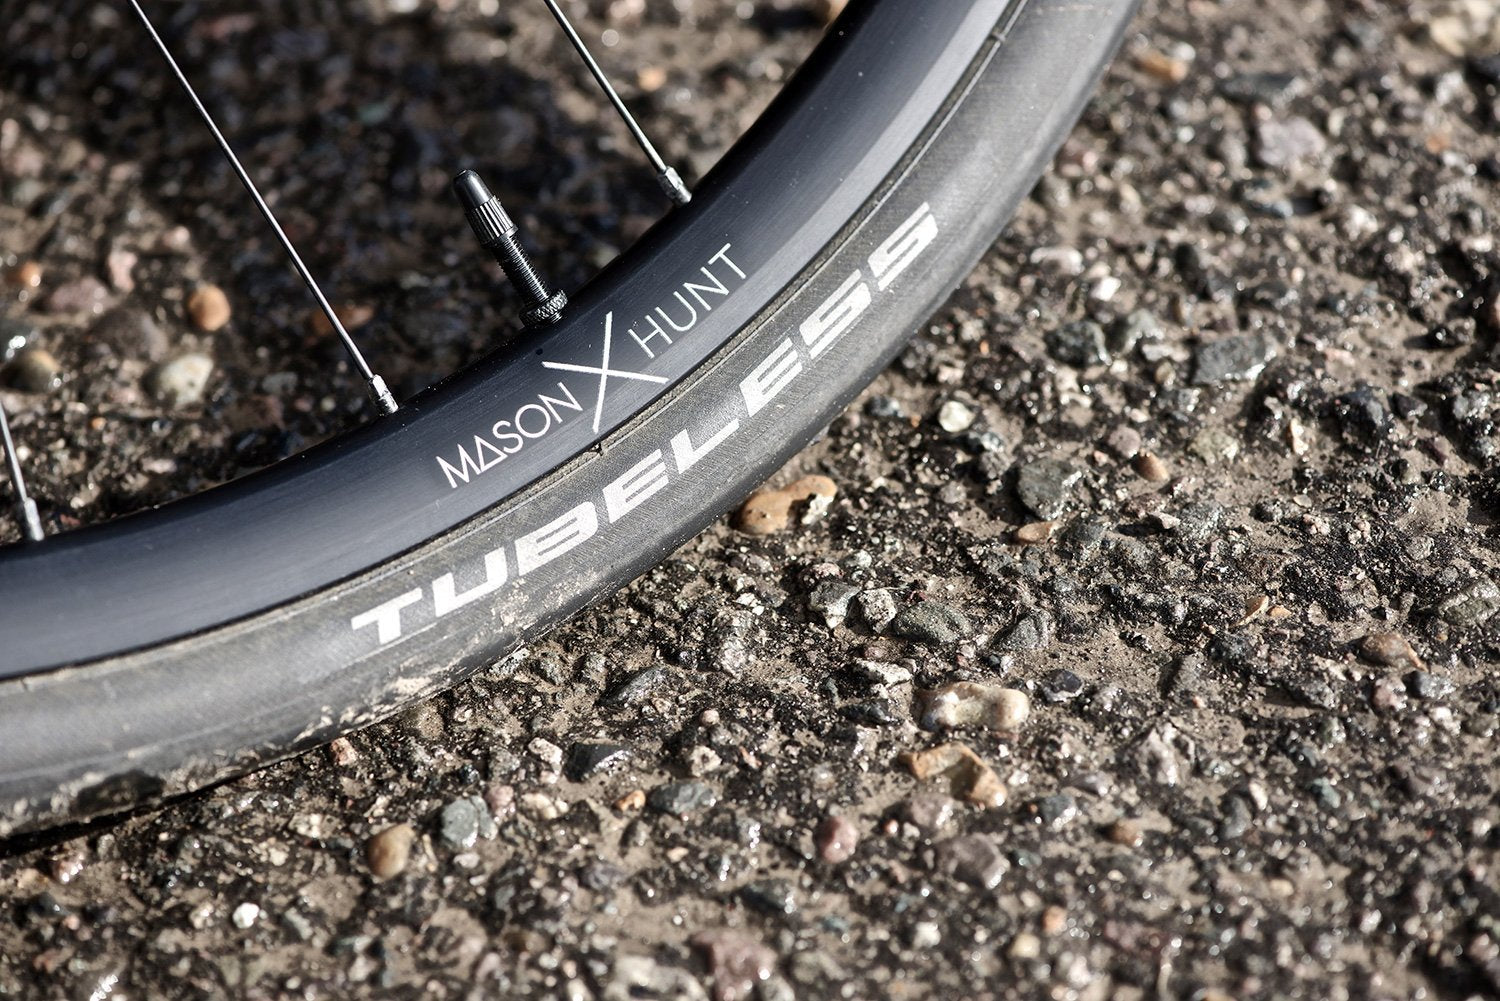 <h1>Tyres</h1><i>At HUNT, we enjoy the puncture resistance and grip benefits of tubeless on our every-day rides so we wanted to allow our customers the same option. Of course, all of our tubeless-ready wheels are designed to work perfectly with clincher tires and inner tubes too.</i>